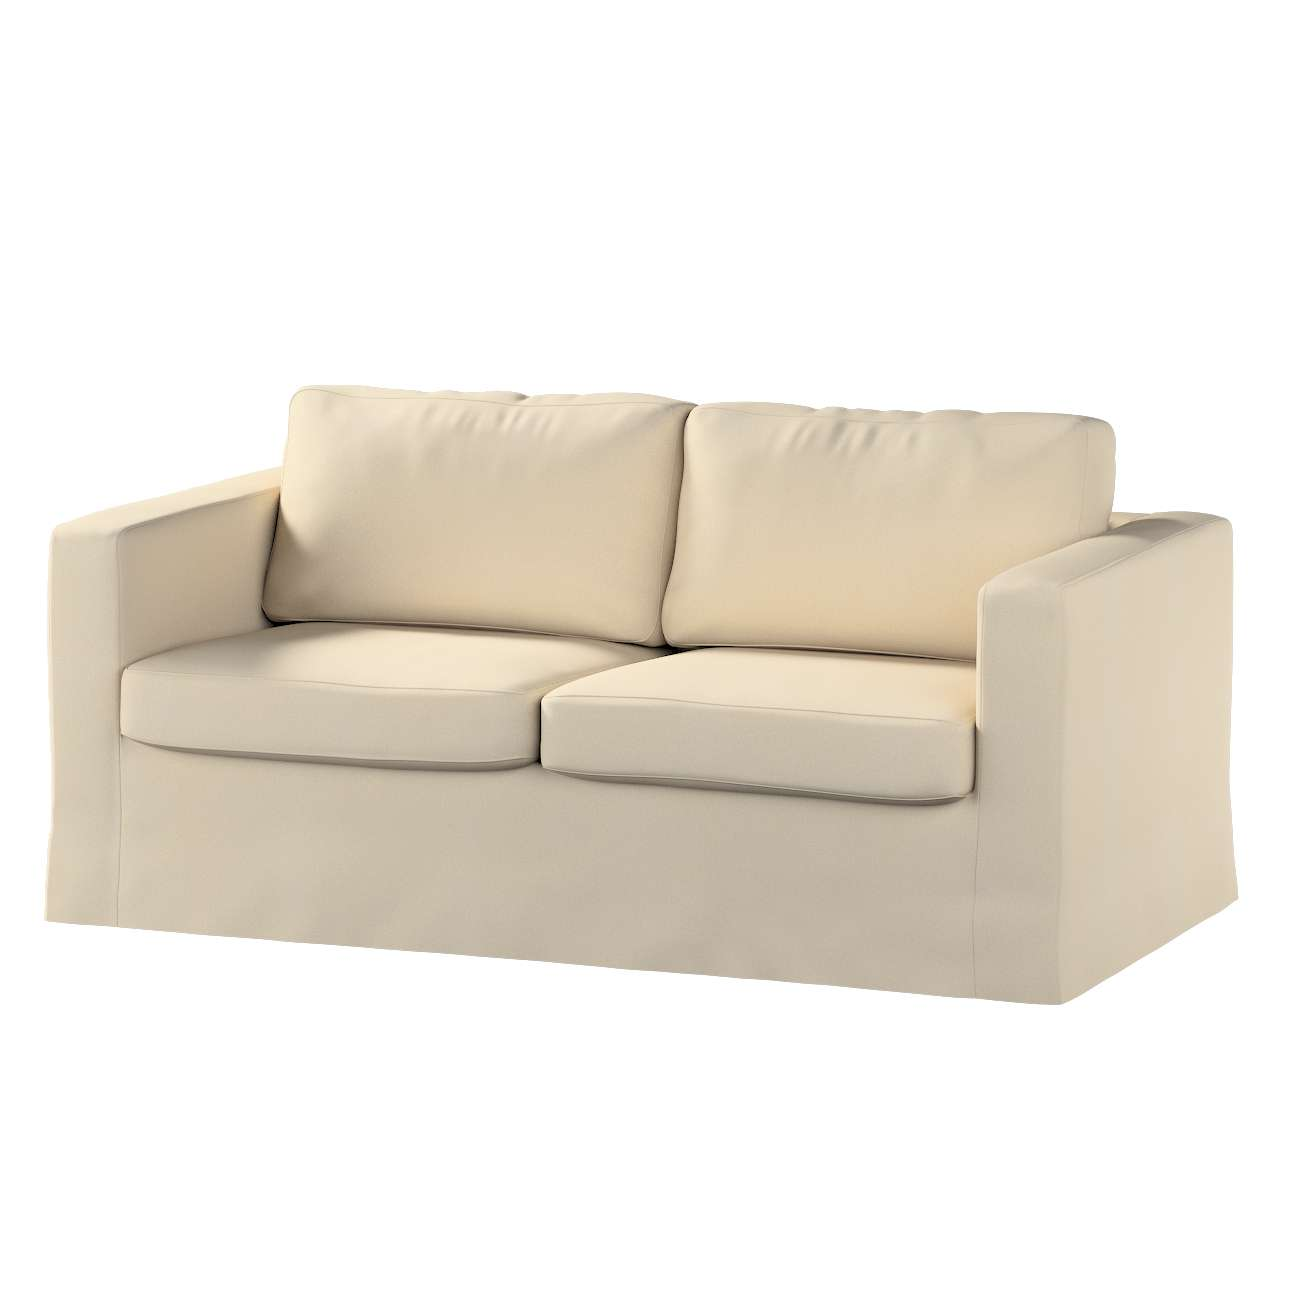 Floor length Karlstad 2-seater sofa cover in collection Madrid, fabric: 160-61